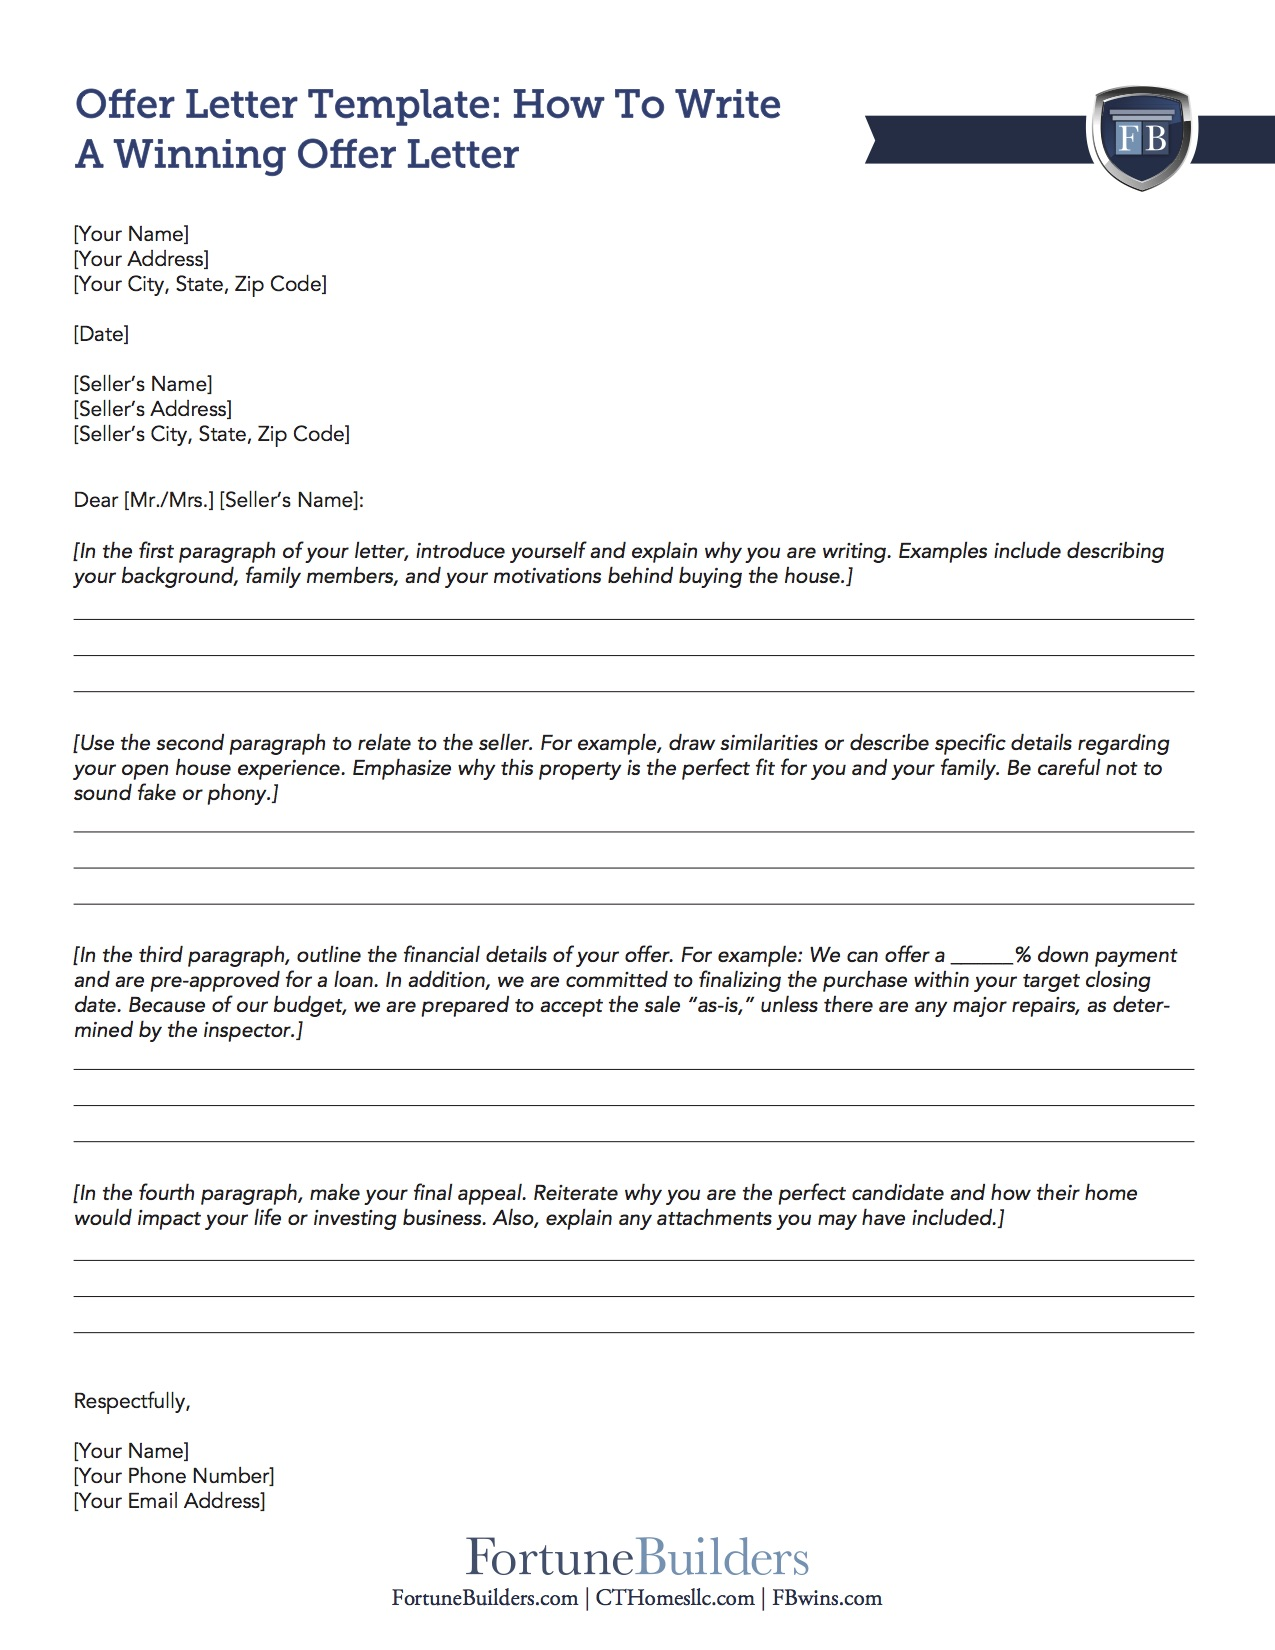 Free offer letter template for home buyers investors fortunebuilders click the image below to download the offer letter template which provides a professional layout and will help you brainstorm talking points for when you flashek Images